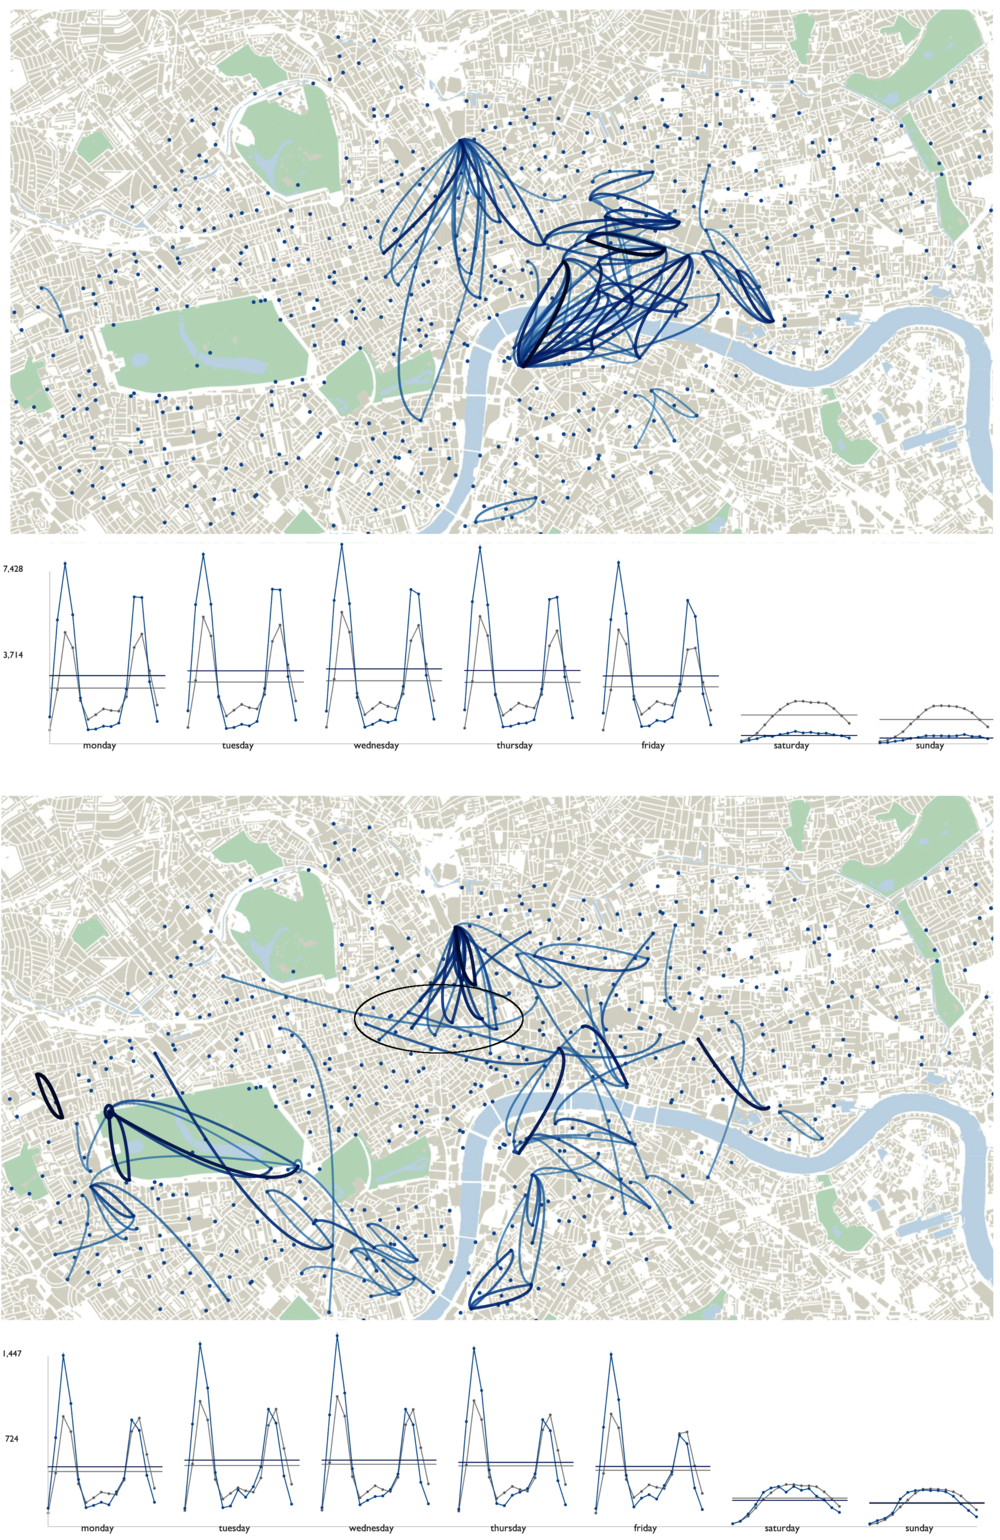 London Cycle Scheme - analysing spatial and temporal patterns in journeys between station pairs concurrently with visual analytics.